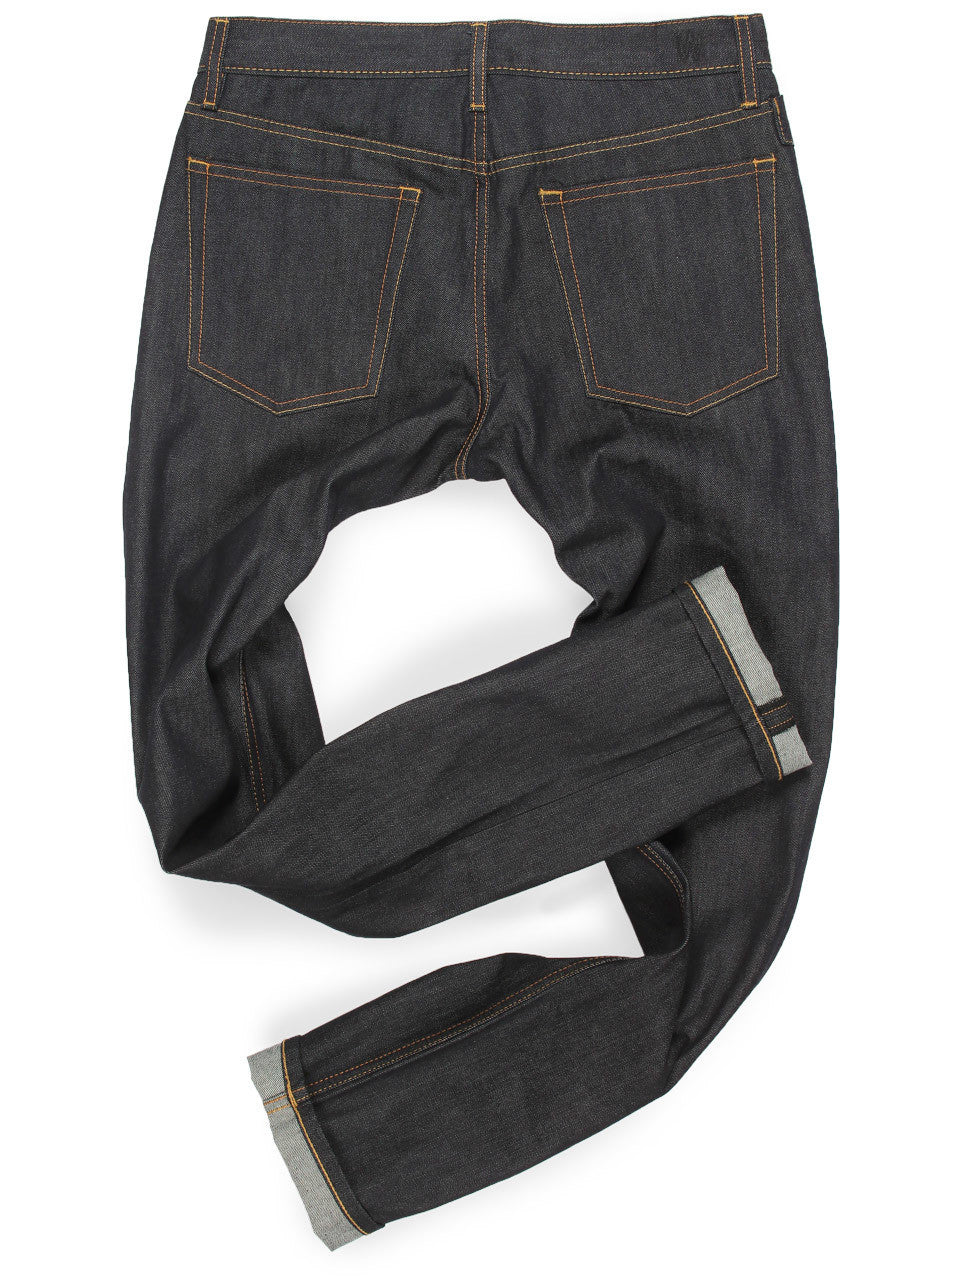 Williamsburg Garment Co. - Grand St. Denim Jeans